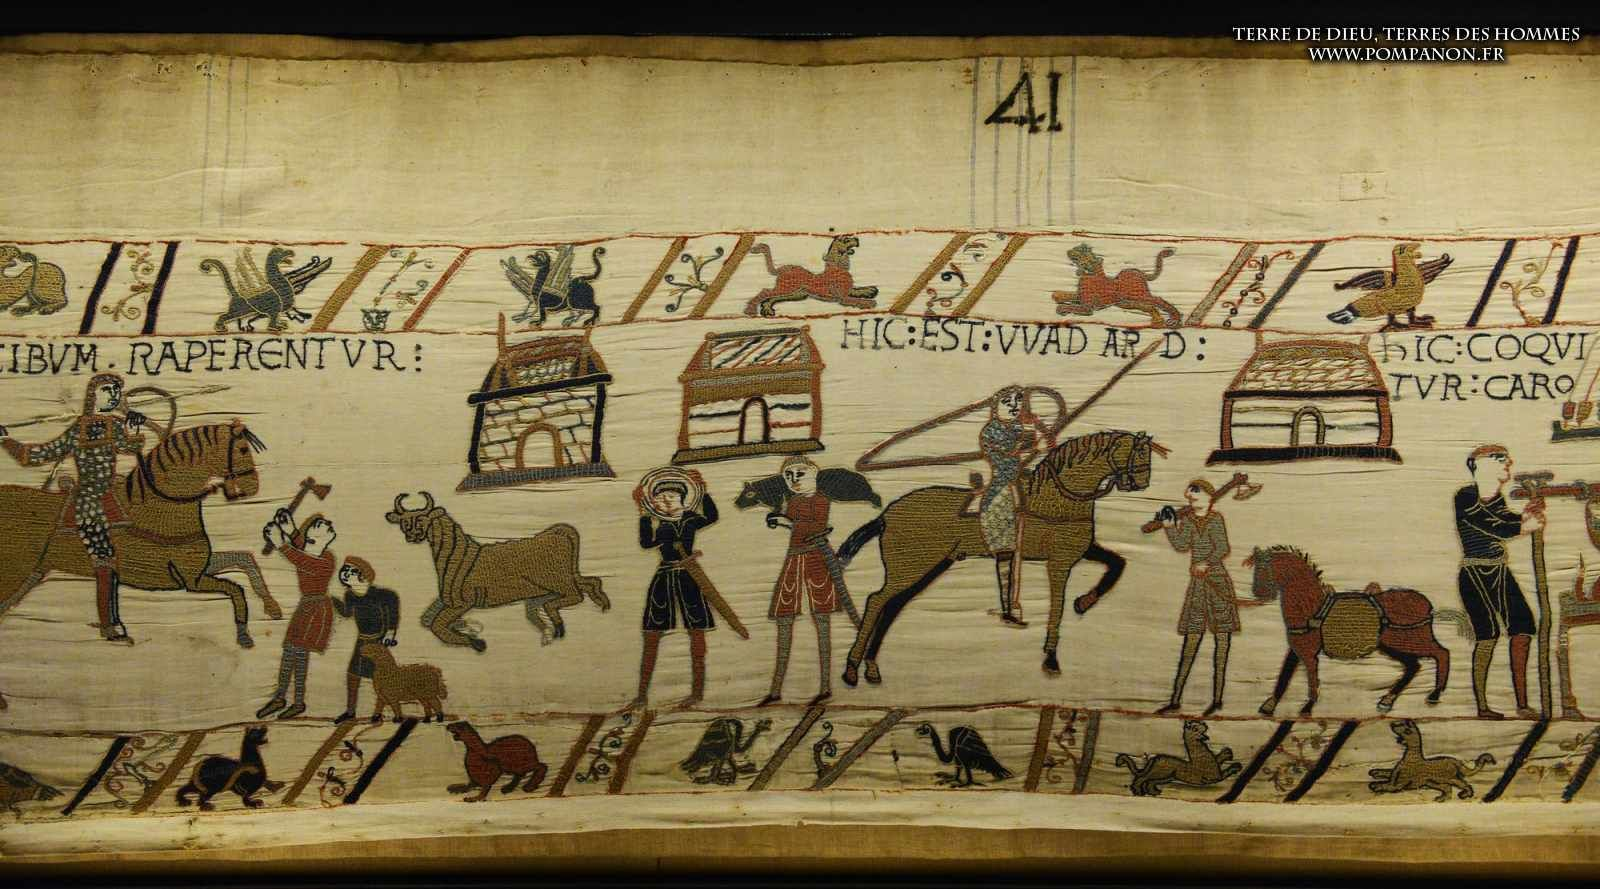 Bayeux Tapestry 41 Here Is Wadard